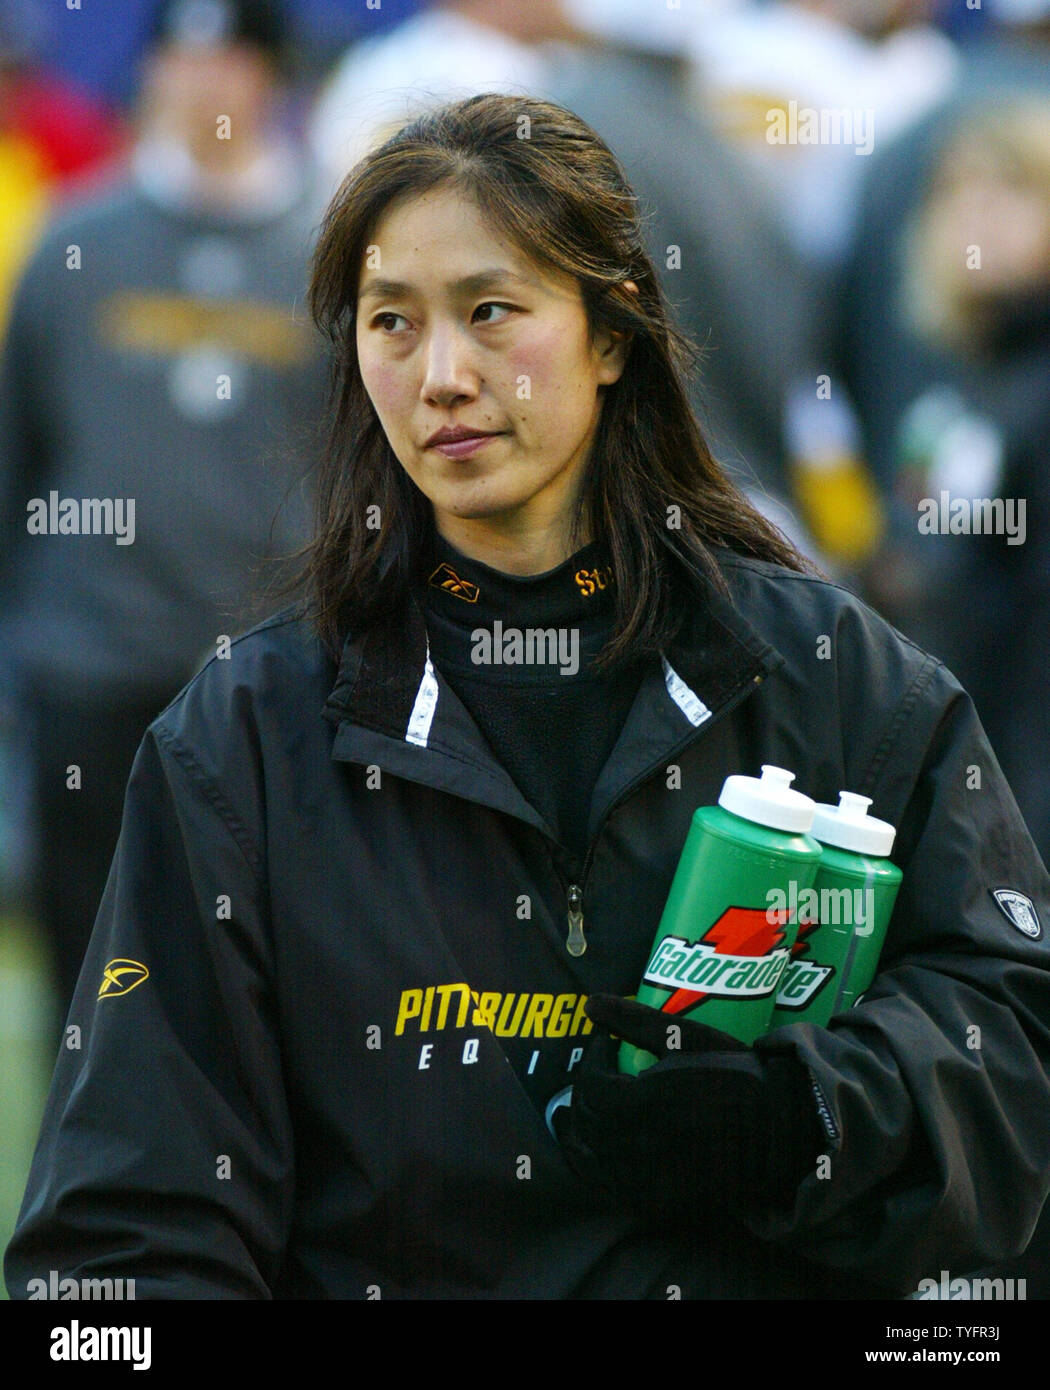 innovative design 986a7 154dc Pittsburgh Steelers assistant trainer Ariko Iso walks the ...